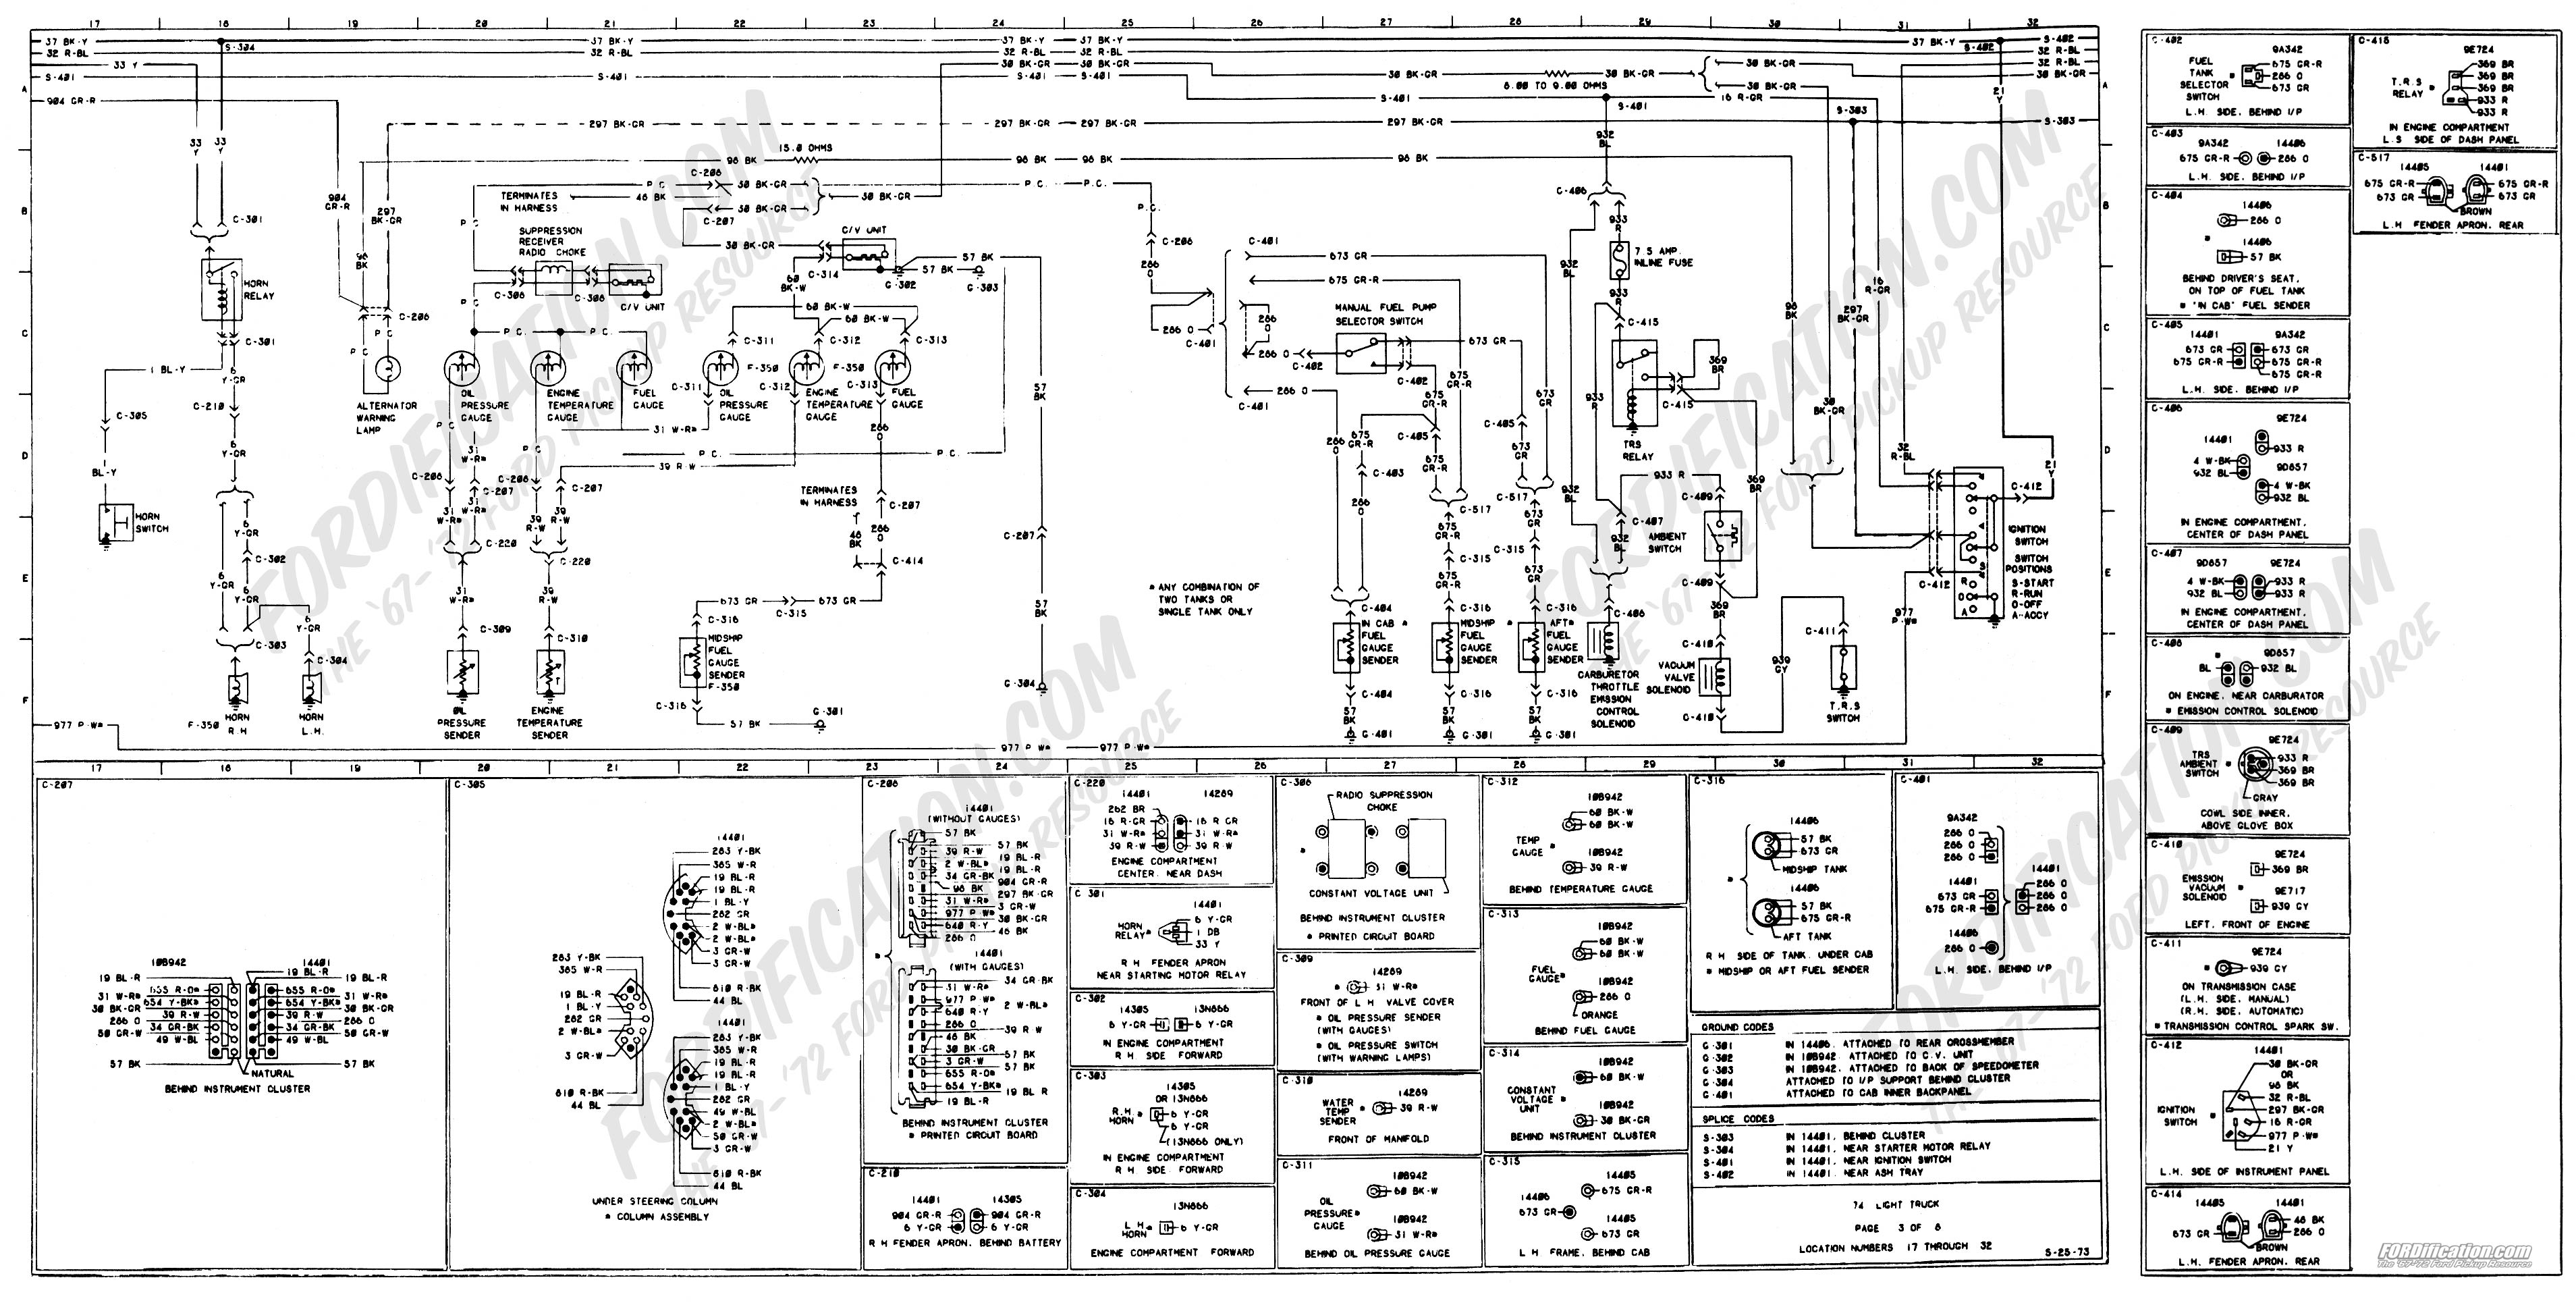 fuse box diagram 2004 f150 with Wiring on 2001 Ford F 150 Under The Hood Fuse Panel Diagram moreover 1998 Dodge Ram Ac Clutch Wont Engage further 7qhsg Econoline 250 Type Fuse Prevent as well 1116697 Fuse 22 Under Hood further 0tarn Need Fuse Box Diagram 1993 Ford Ranger.